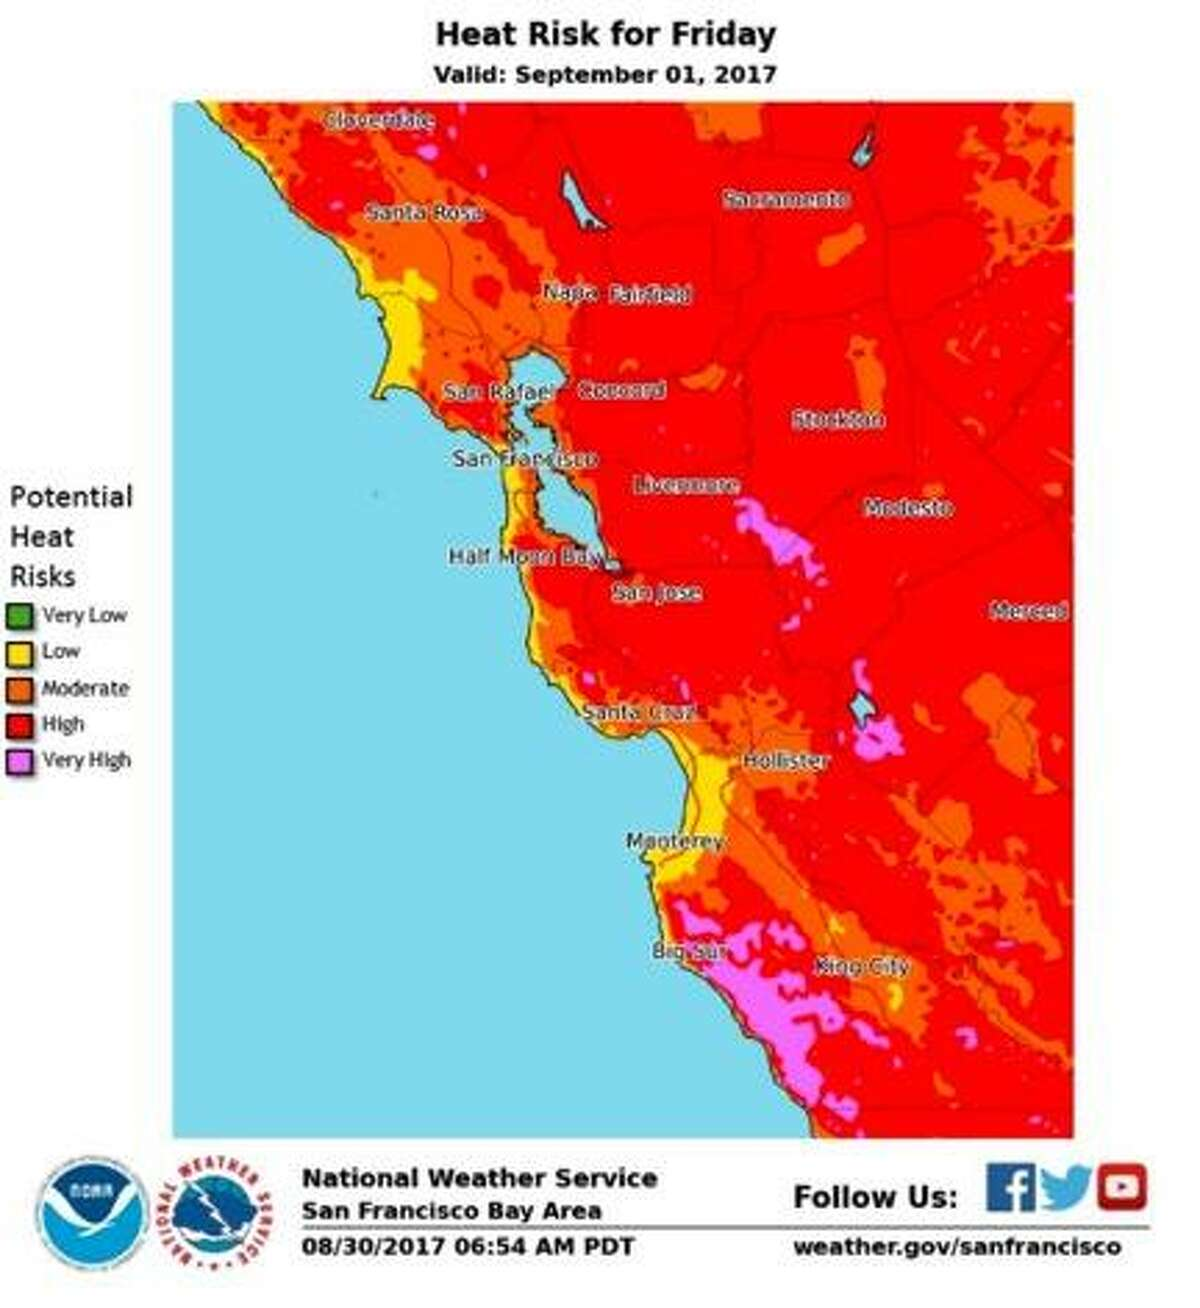 Parts of the Bay Area could tie heat records with triple-digit temperatures forecast in some areas on Friday, meteorologists said.